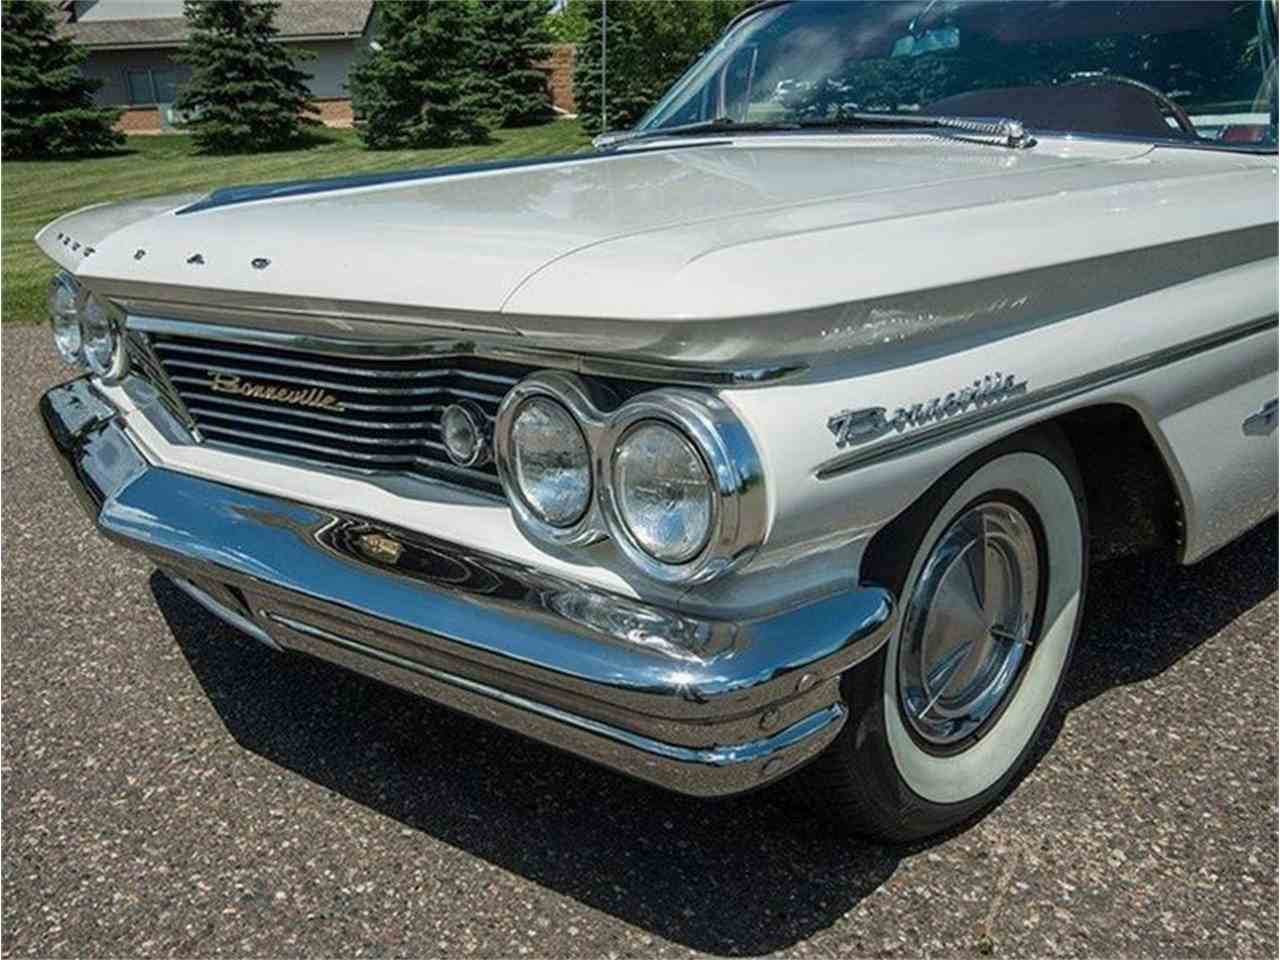 Large Picture of 1960 Pontiac Bonneville located in Minnesota - $54,950.00 Offered by Ellingson Motorcars - LF7P